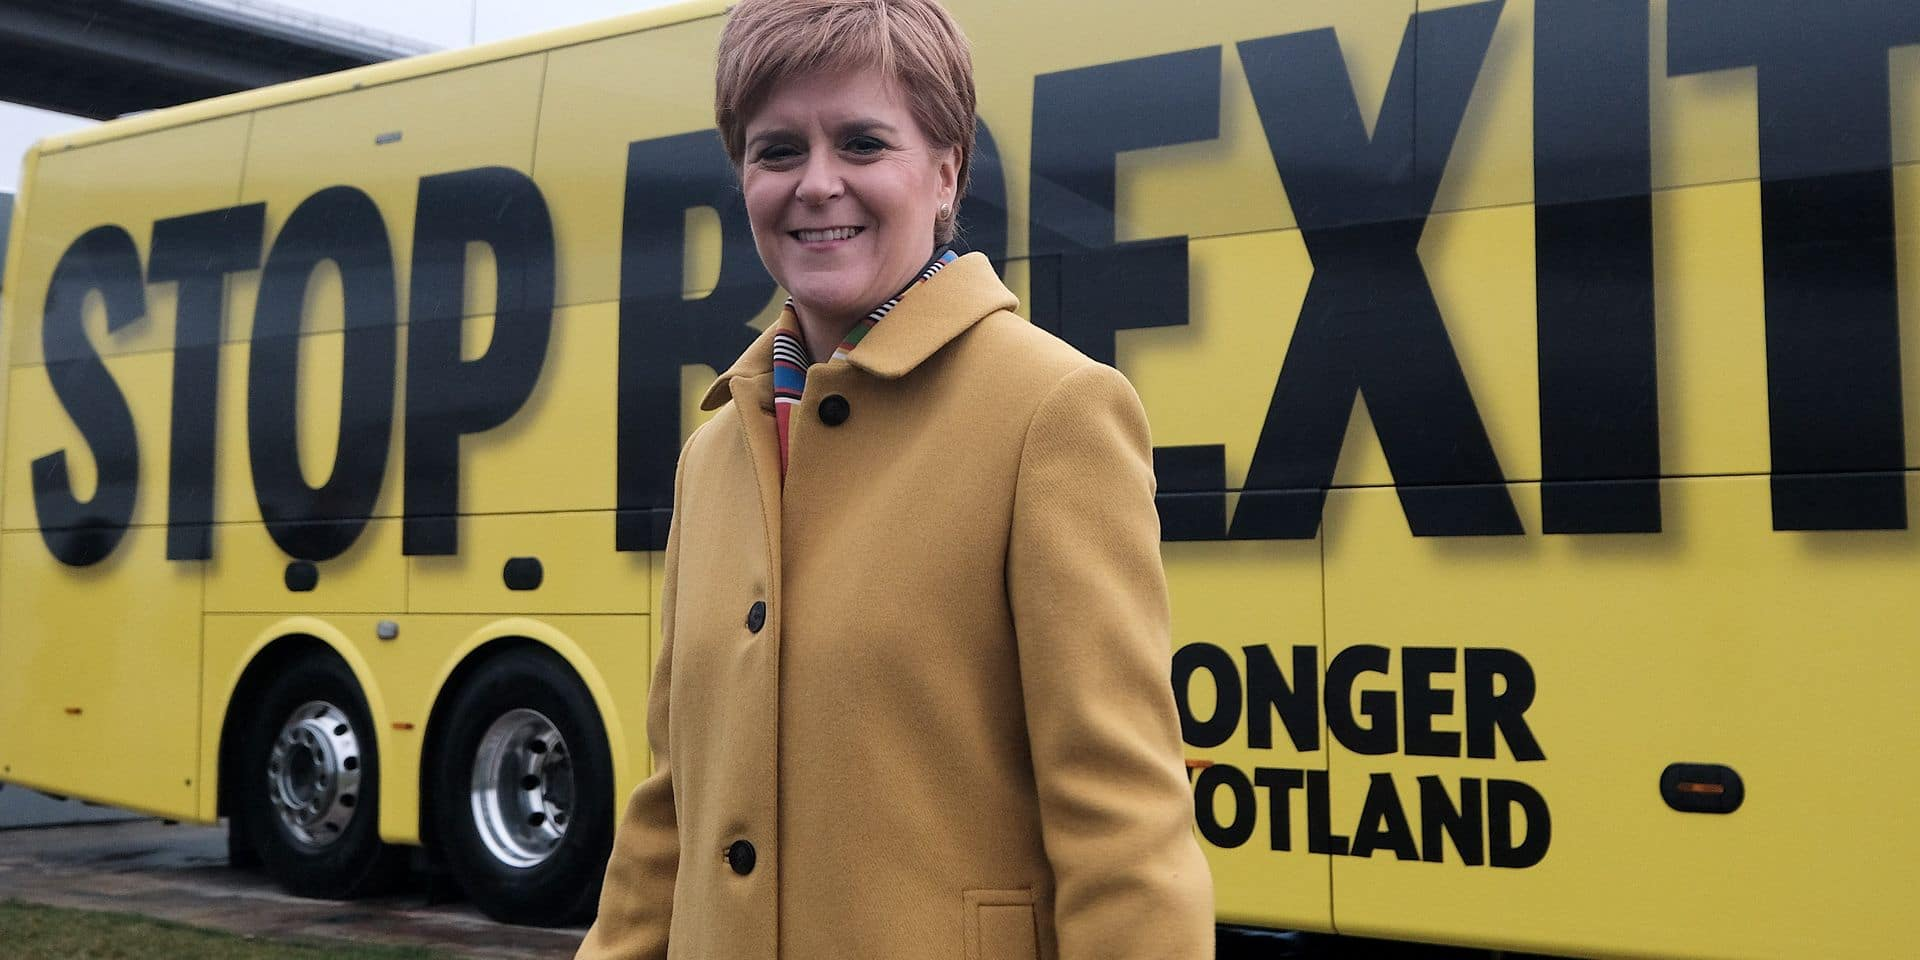 Nicola Sturgeon in South Queensferry, Thursday 5th December 2019